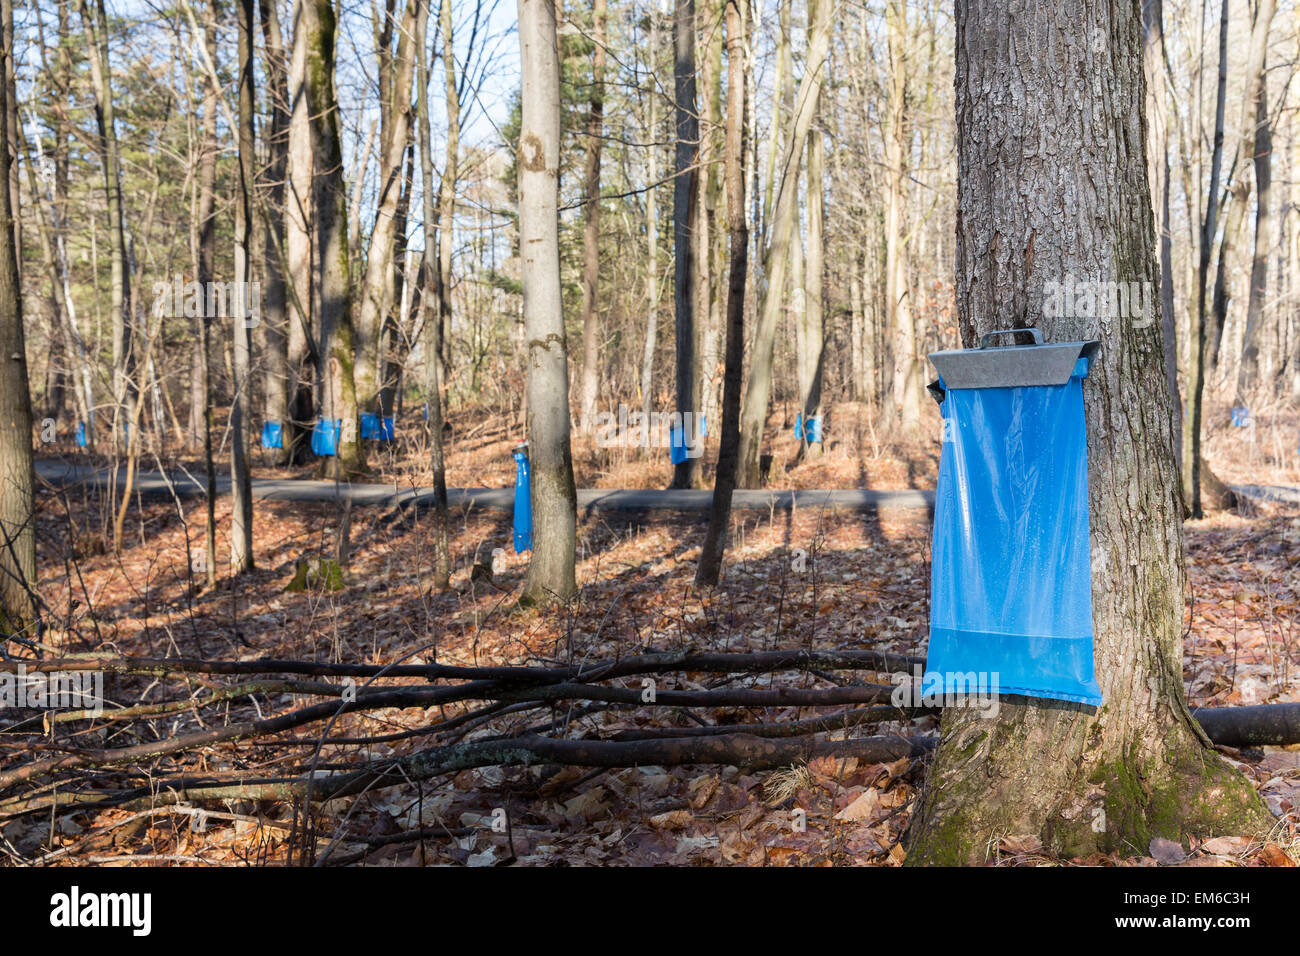 Tapping maple trees in the Spring to make maple syrup.  Blue collection bags collecting natural food using a traditional - Stock Image